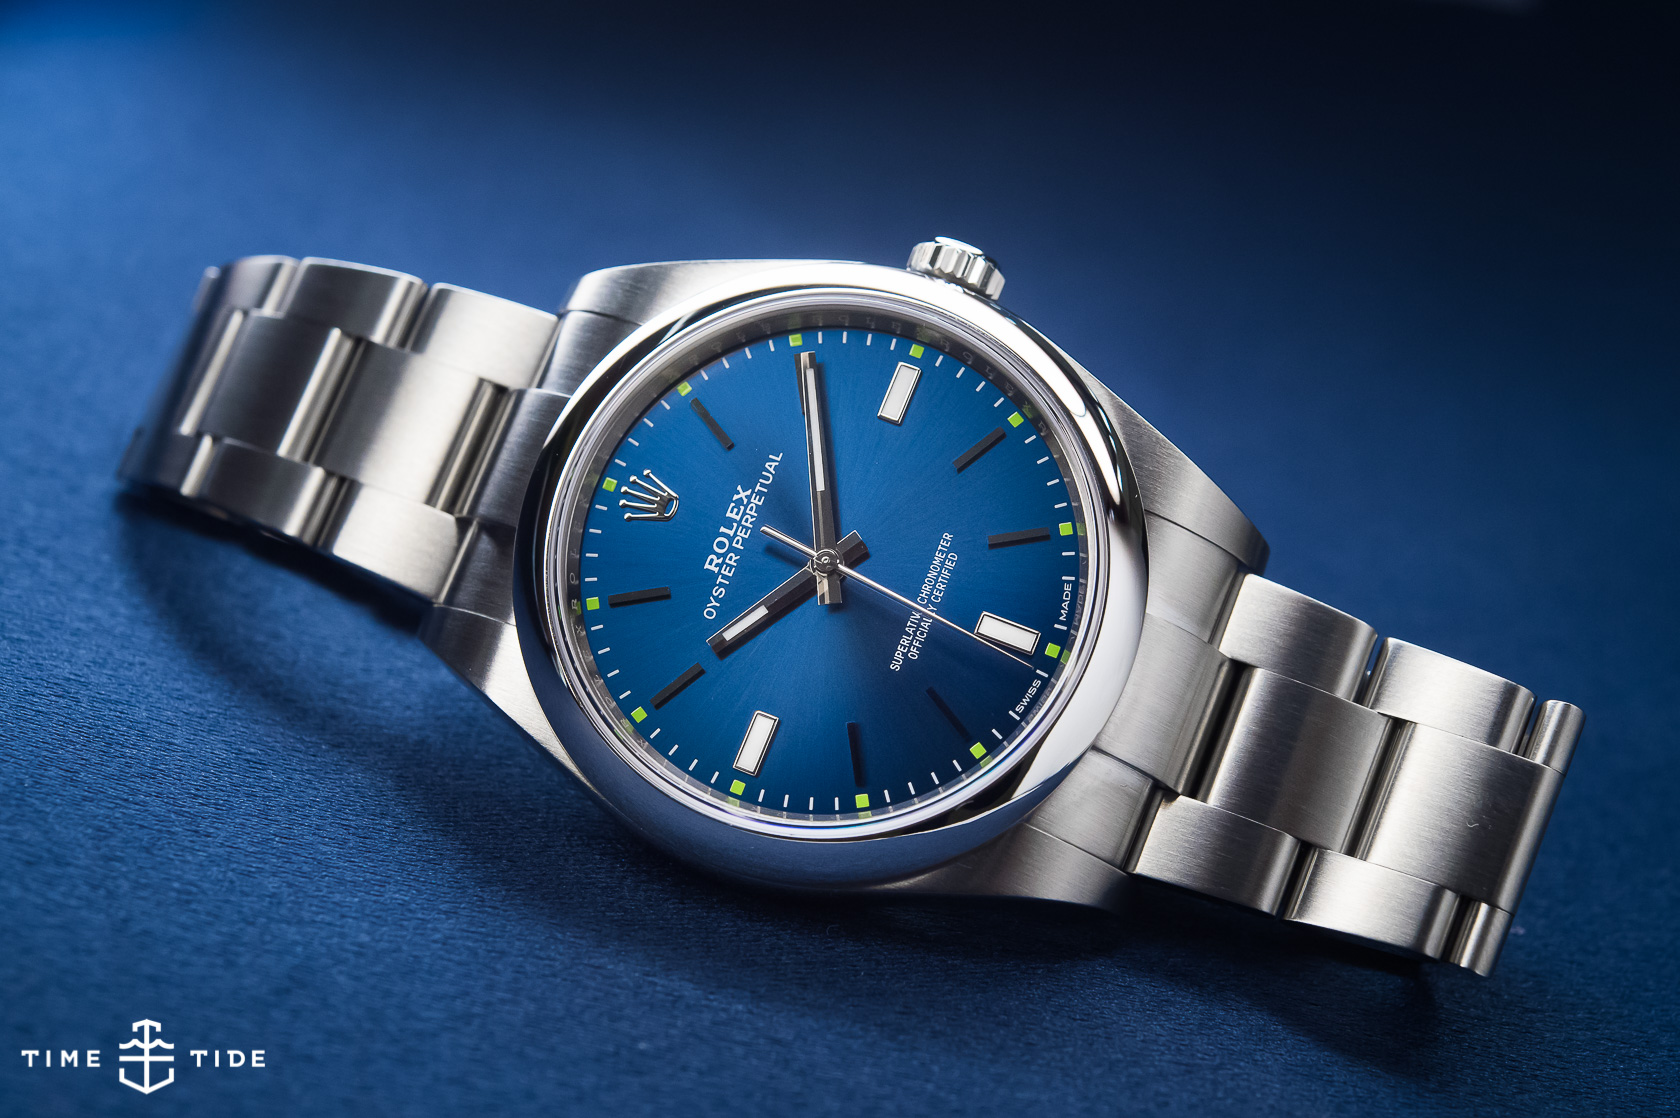 IN-DEPTH: The Rolex Oyster Perpetual 39 (ref. 114300 ...